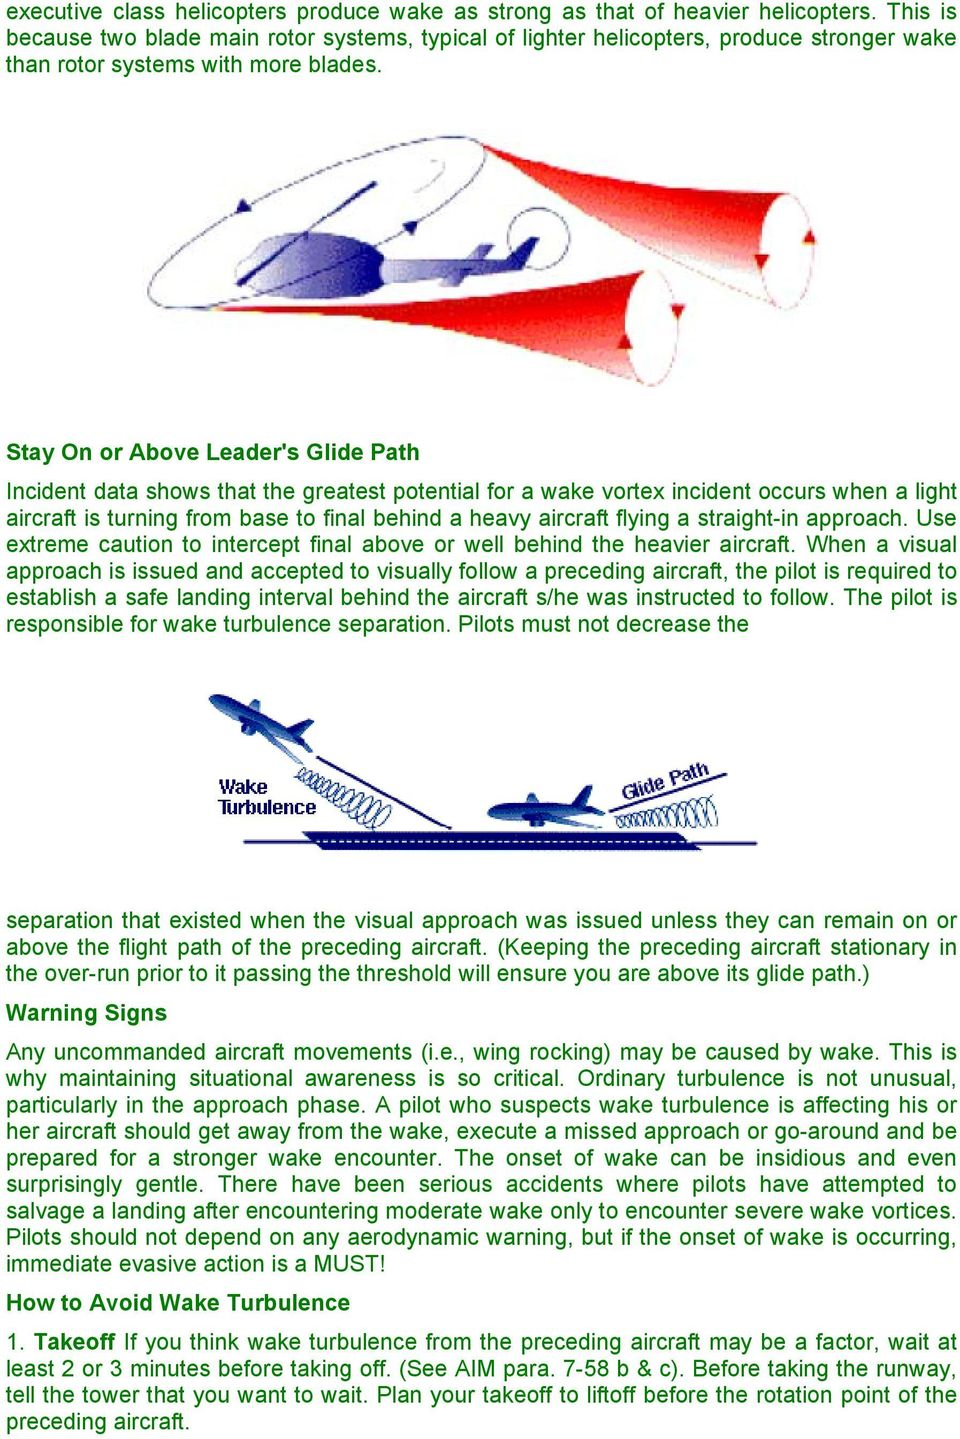 Stay On or Above Leader's Glide Path Incident data shows that the greatest potential for a wake vortex incident occurs when a light aircraft is turning from base to final behind a heavy aircraft